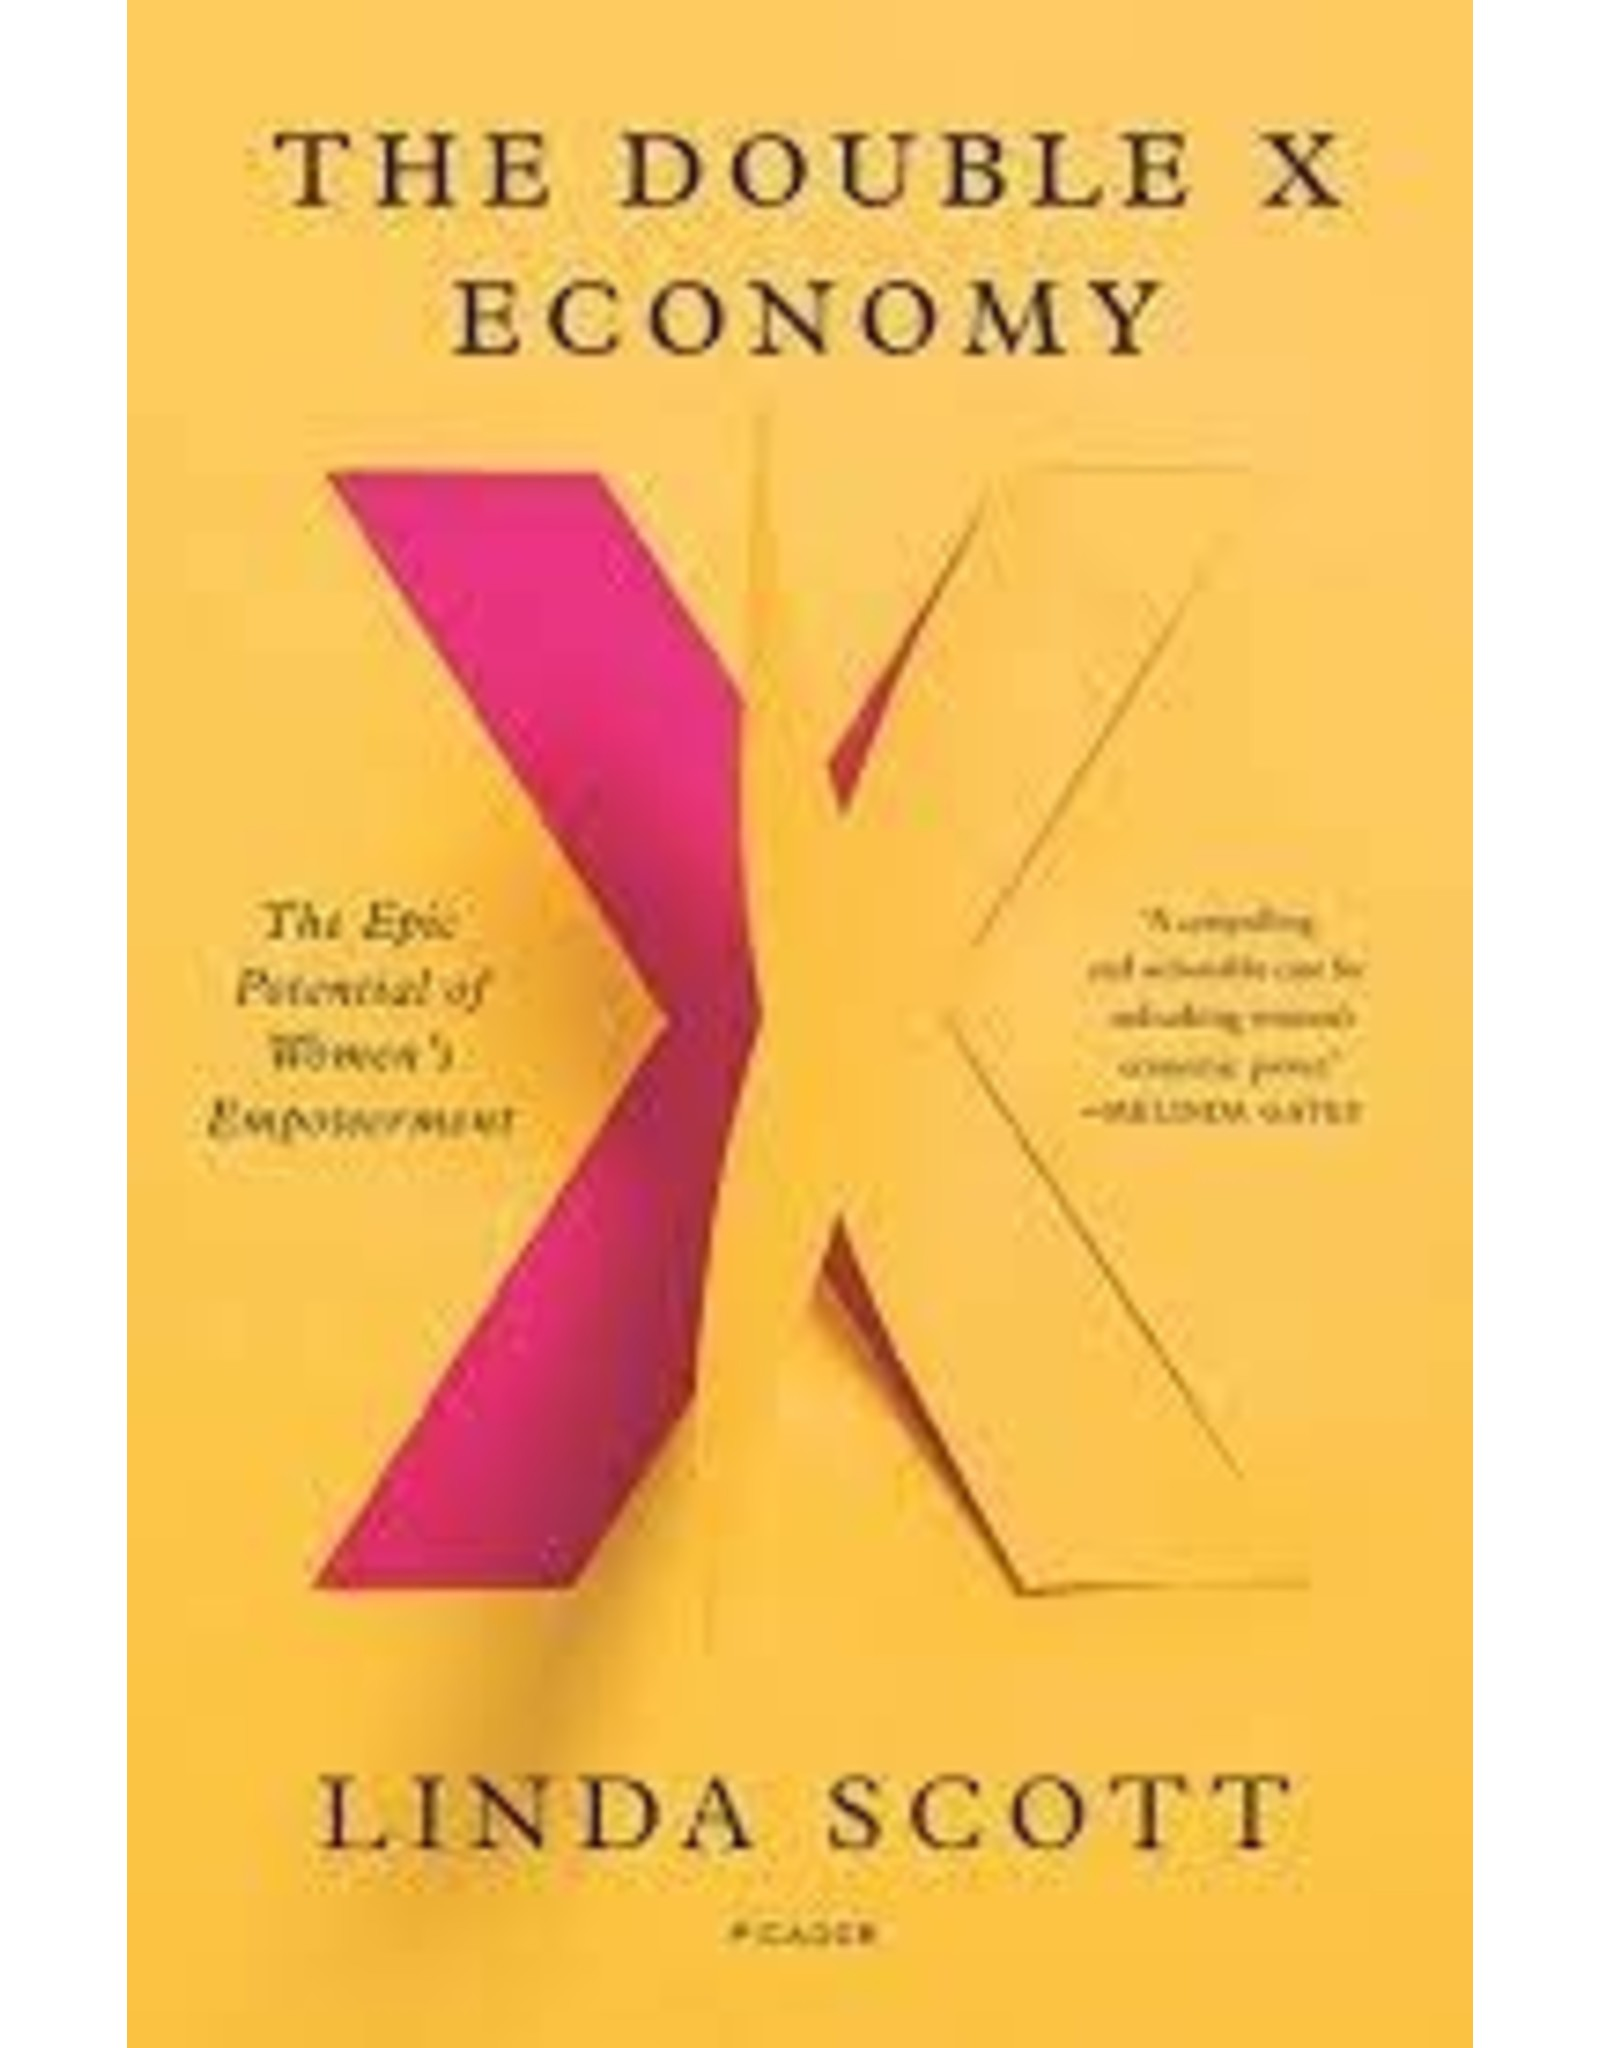 Books The Double X Ecomony: The Epic Potential of Women's Empowerment  by Linda Scott